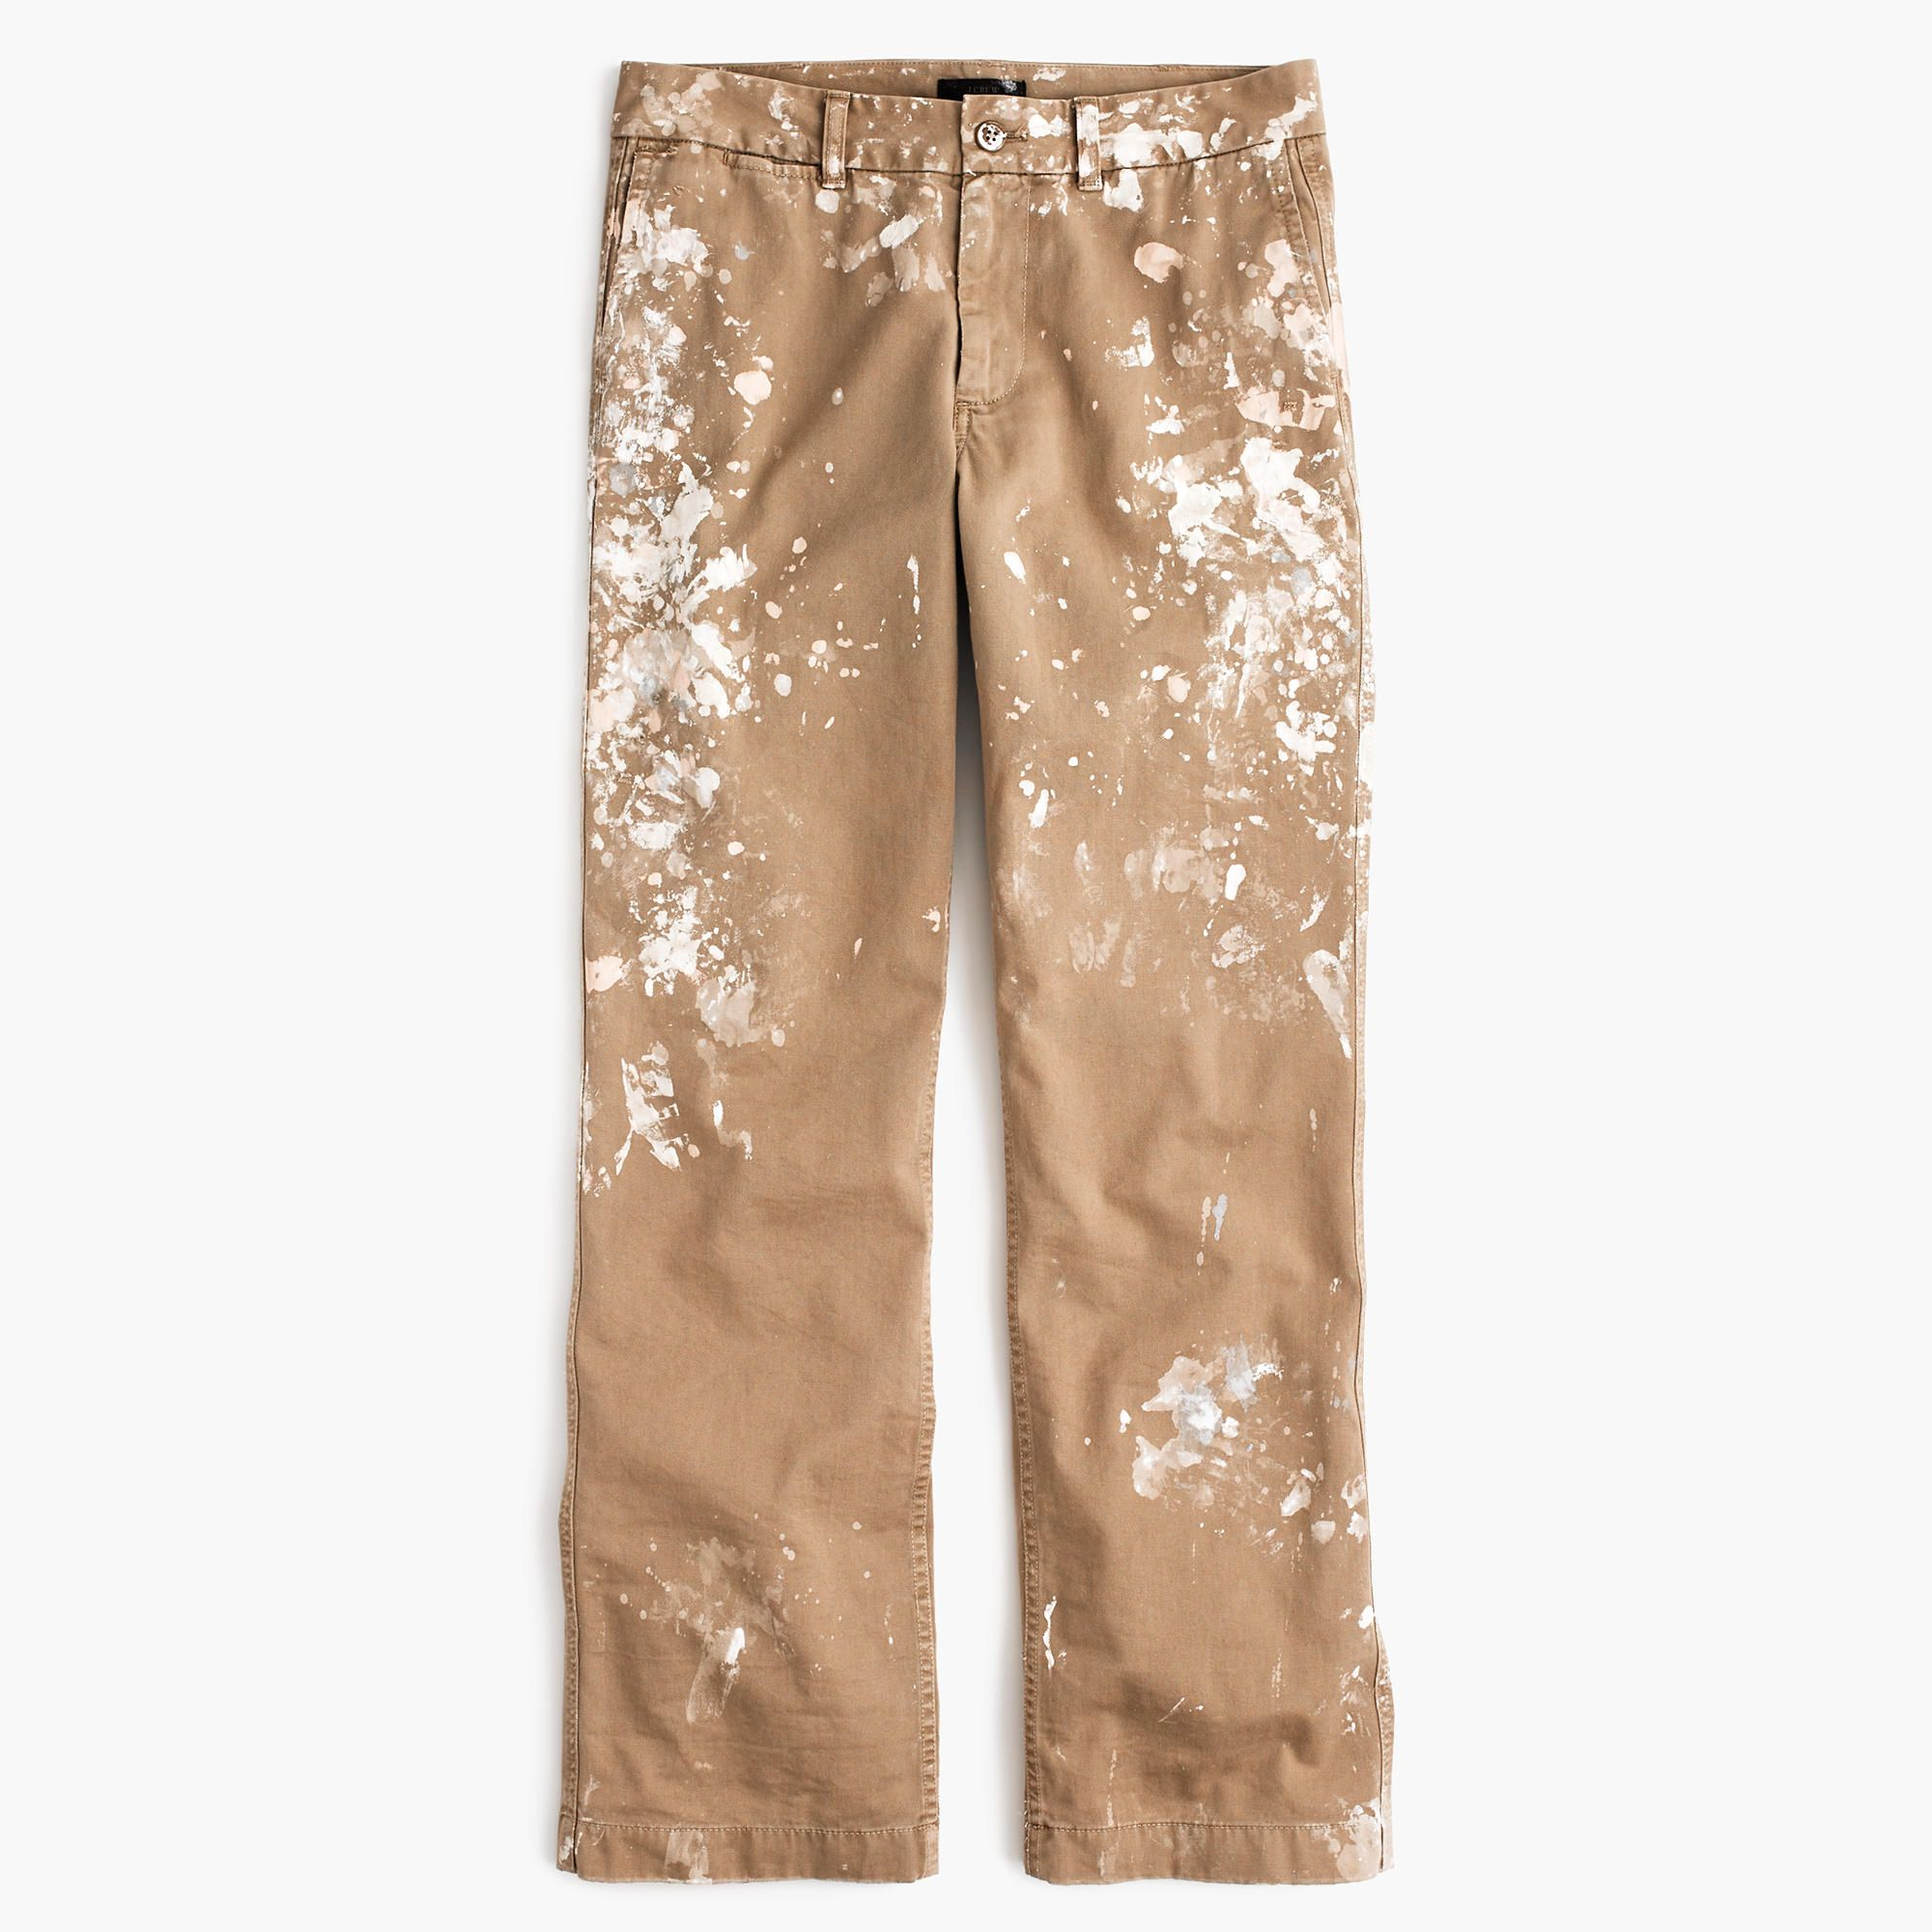 032113a440 J.Crew - Limited-edition boyfriend chino pant in paint splatter ...